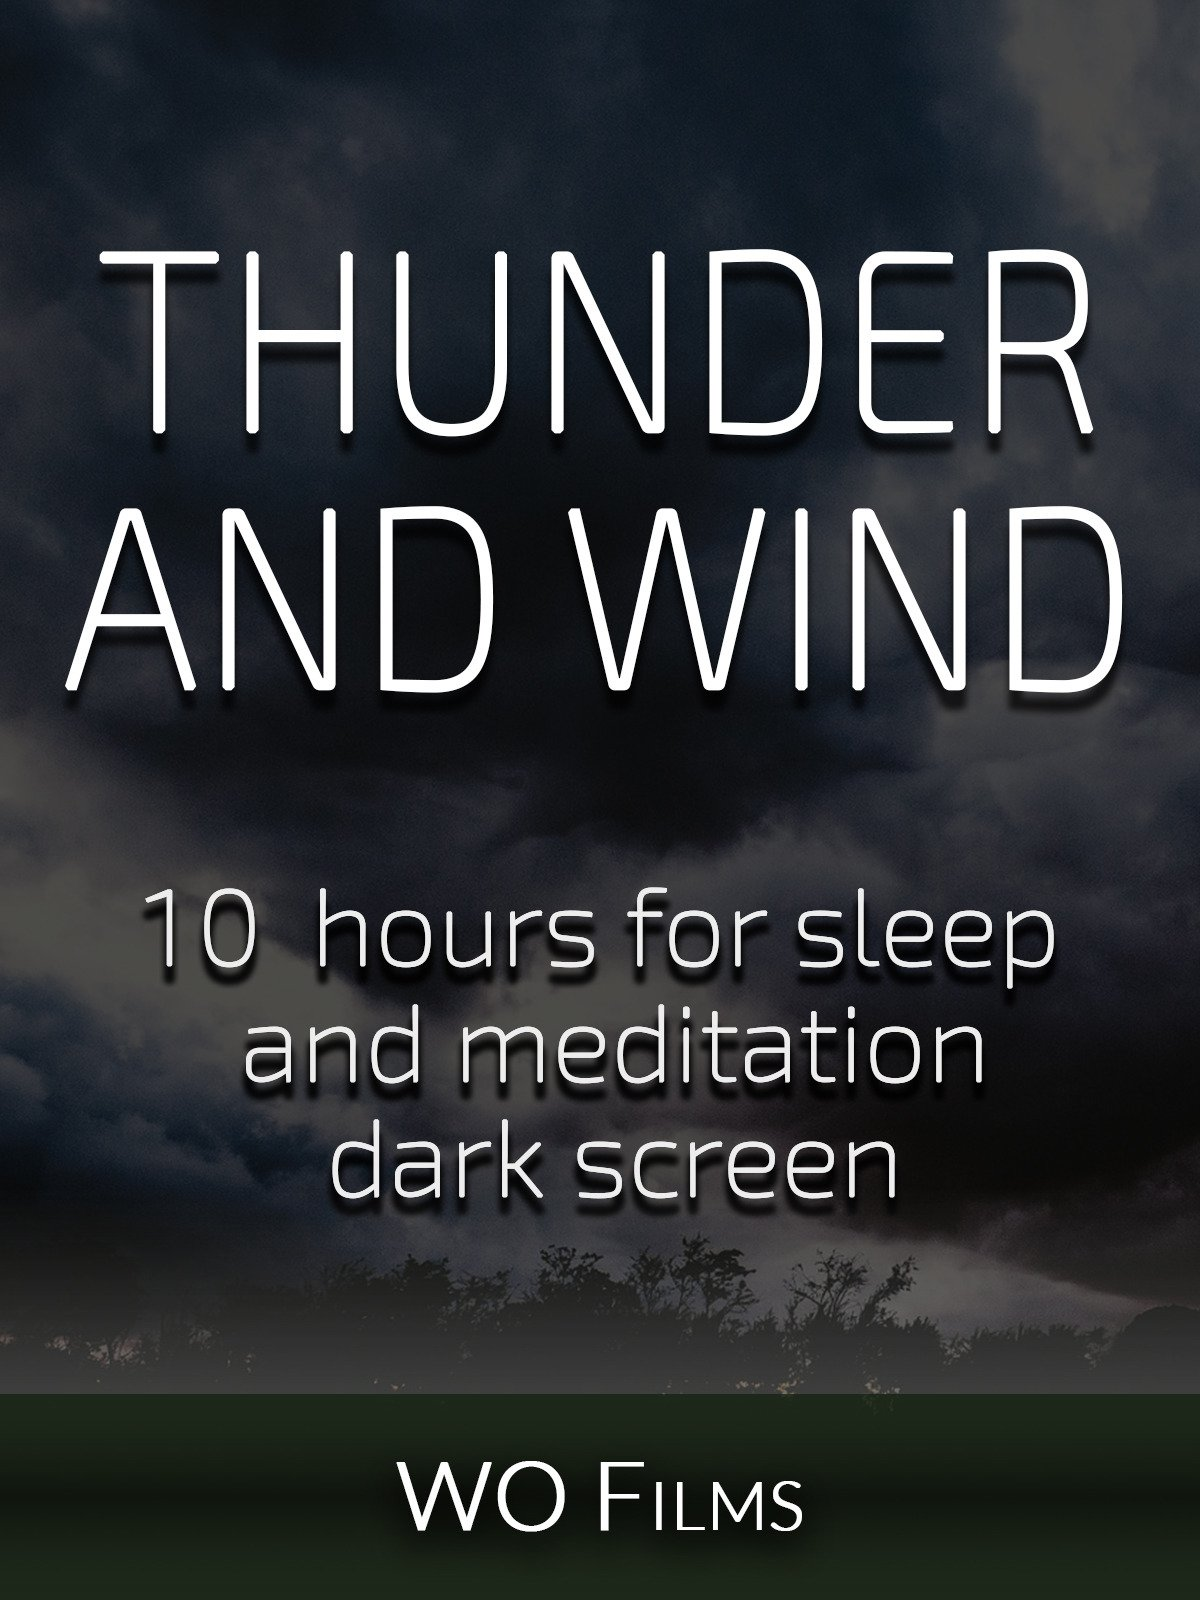 Thunder and wind, 10 hours for Sleep and Meditation, dark screen